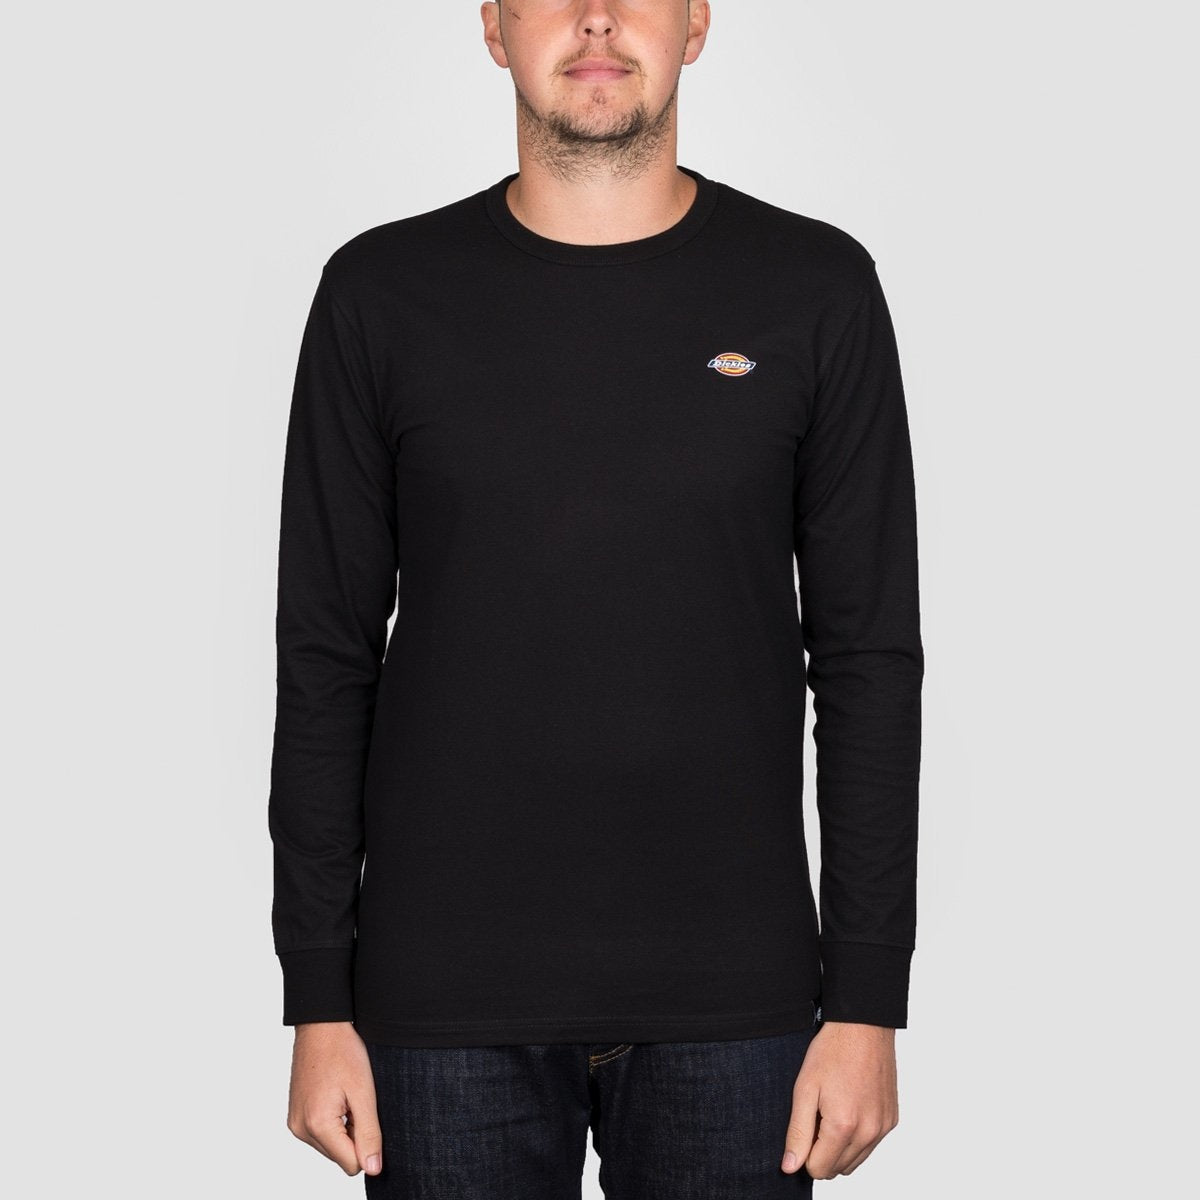 Dickies Round Rock Long Sleeve Tee Black - Clothing